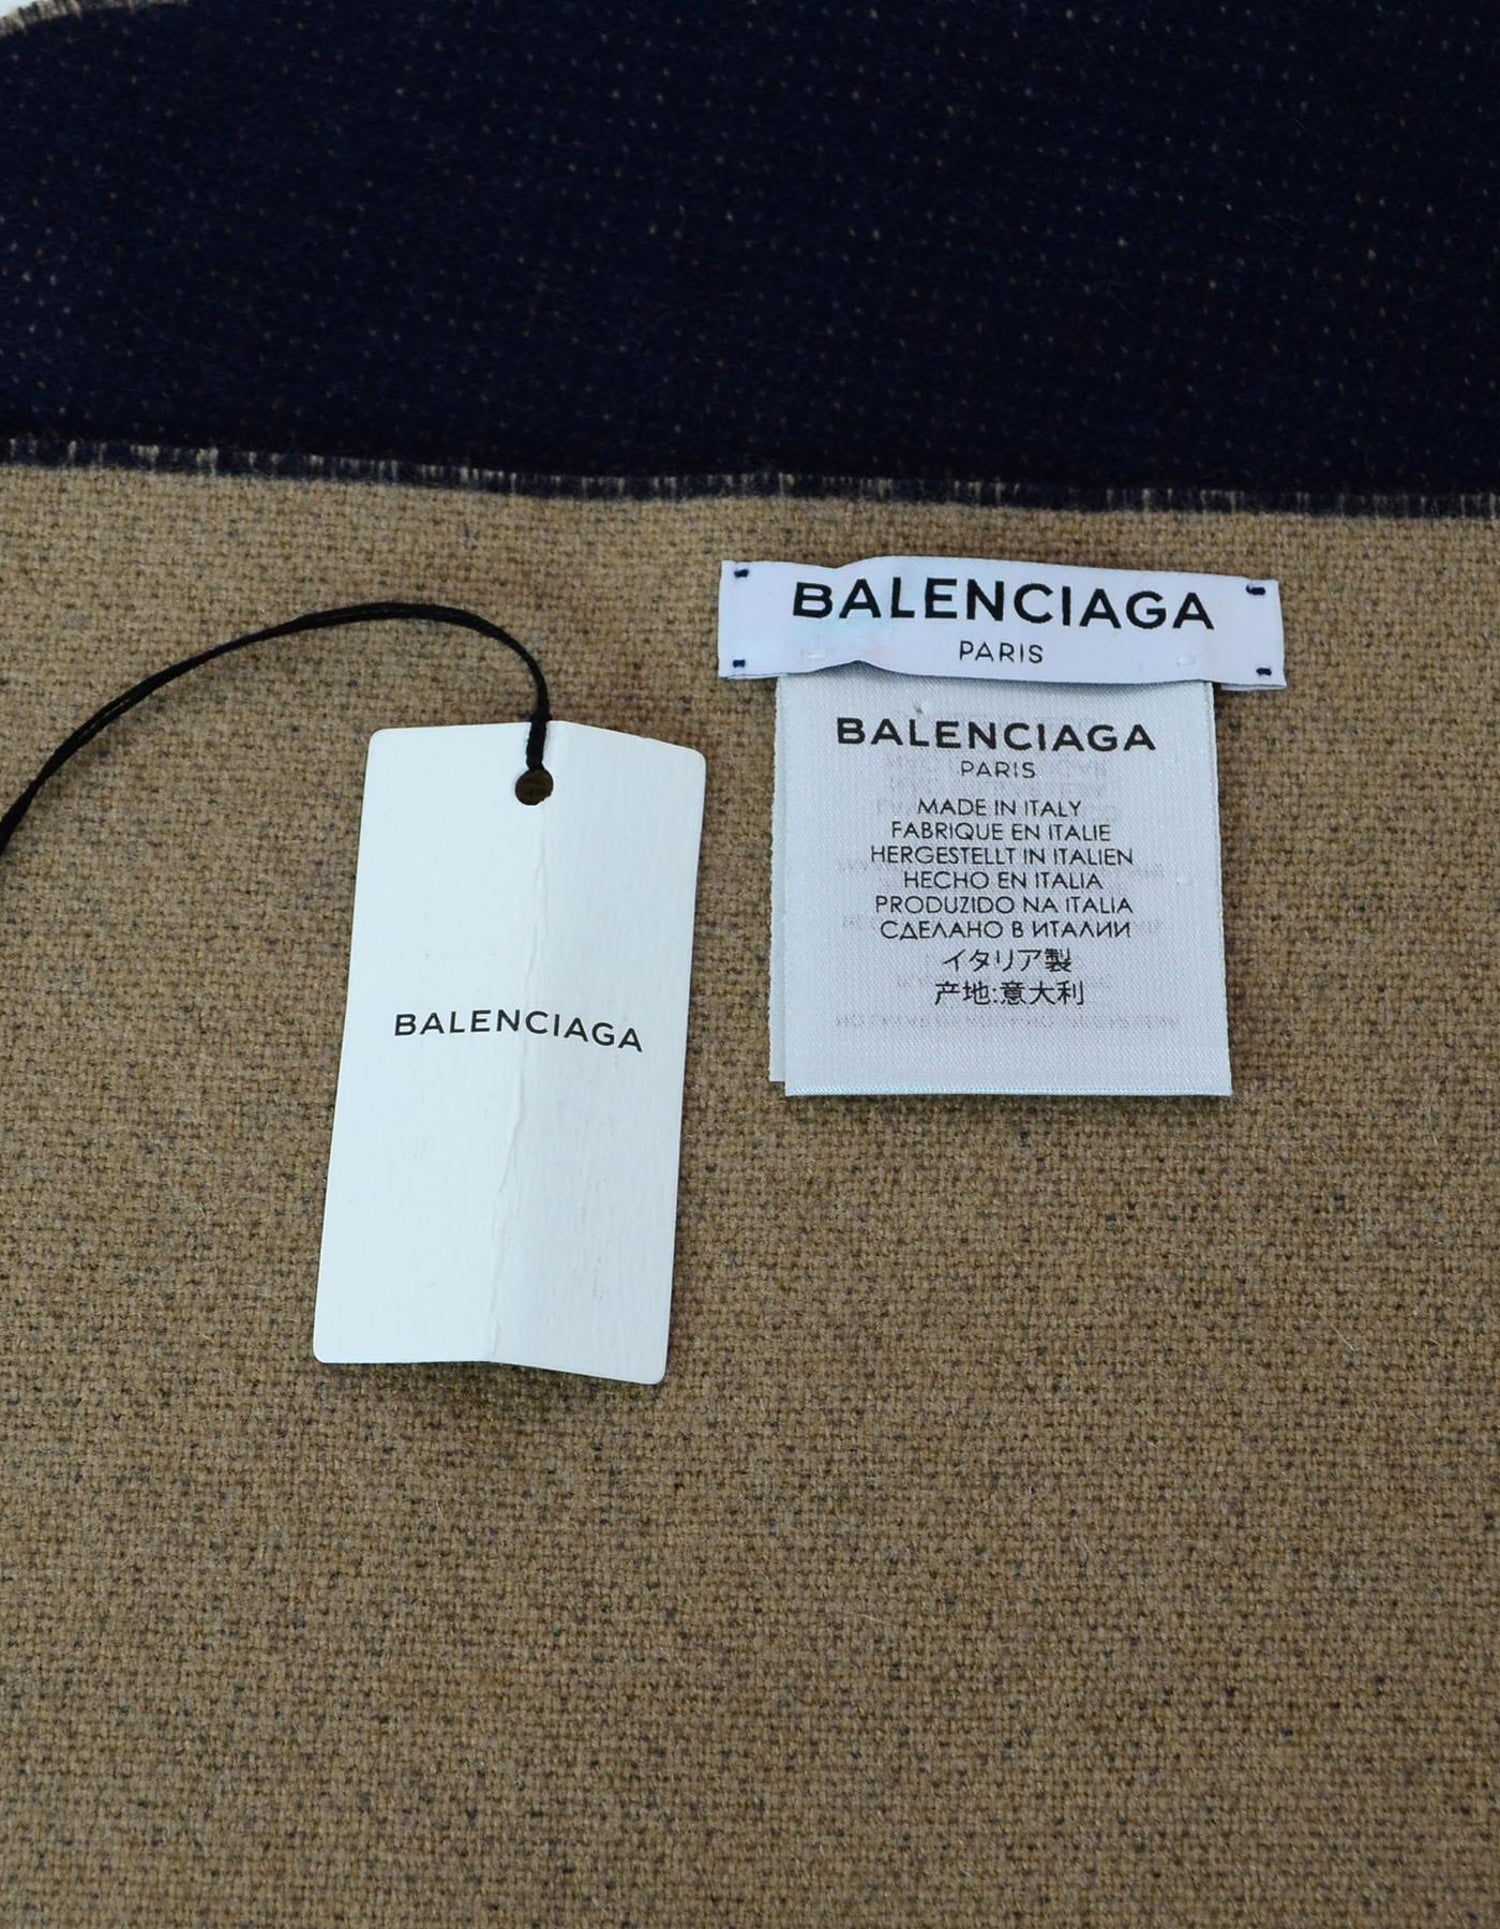 ece36ca4ae49 Balenciaga Navy and Tan Cashmere Blanket Scarf For Sale at 1stdibs